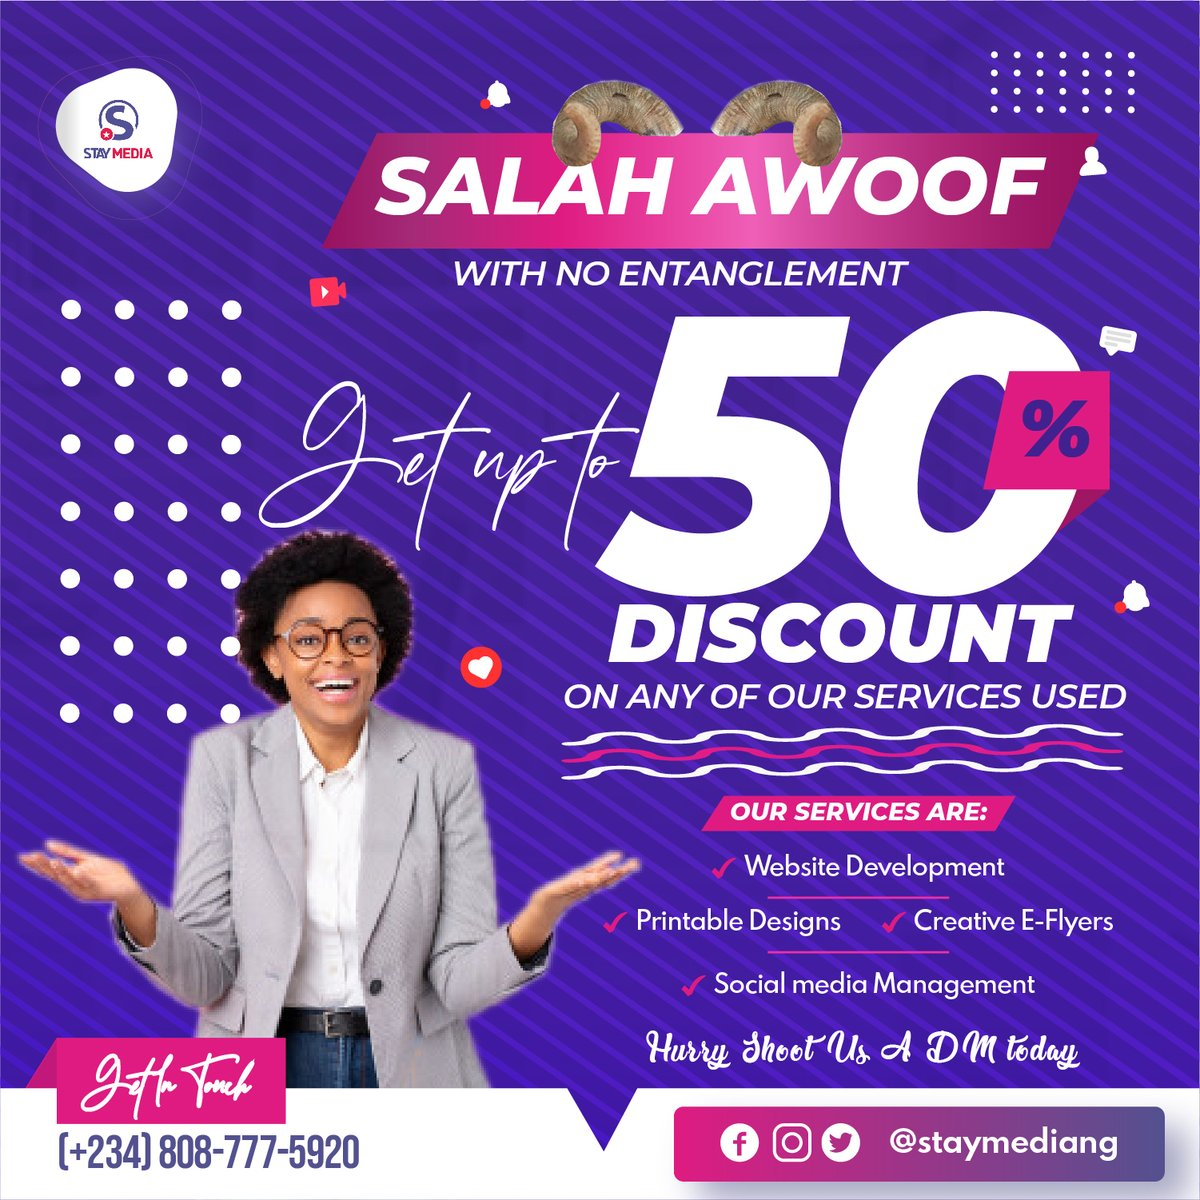 An Awoof without an Entanglement? Yeah, You heard right. Take this amazing offer of 50% discount on any of our services this Salah season.  We're just a d.m away!  #staymediang #staymedia #debugging #programmerjokes #wednesdaywisdom #wednesdayvibes #wednesdaymotivation pic.twitter.com/uBPPMCTKz2